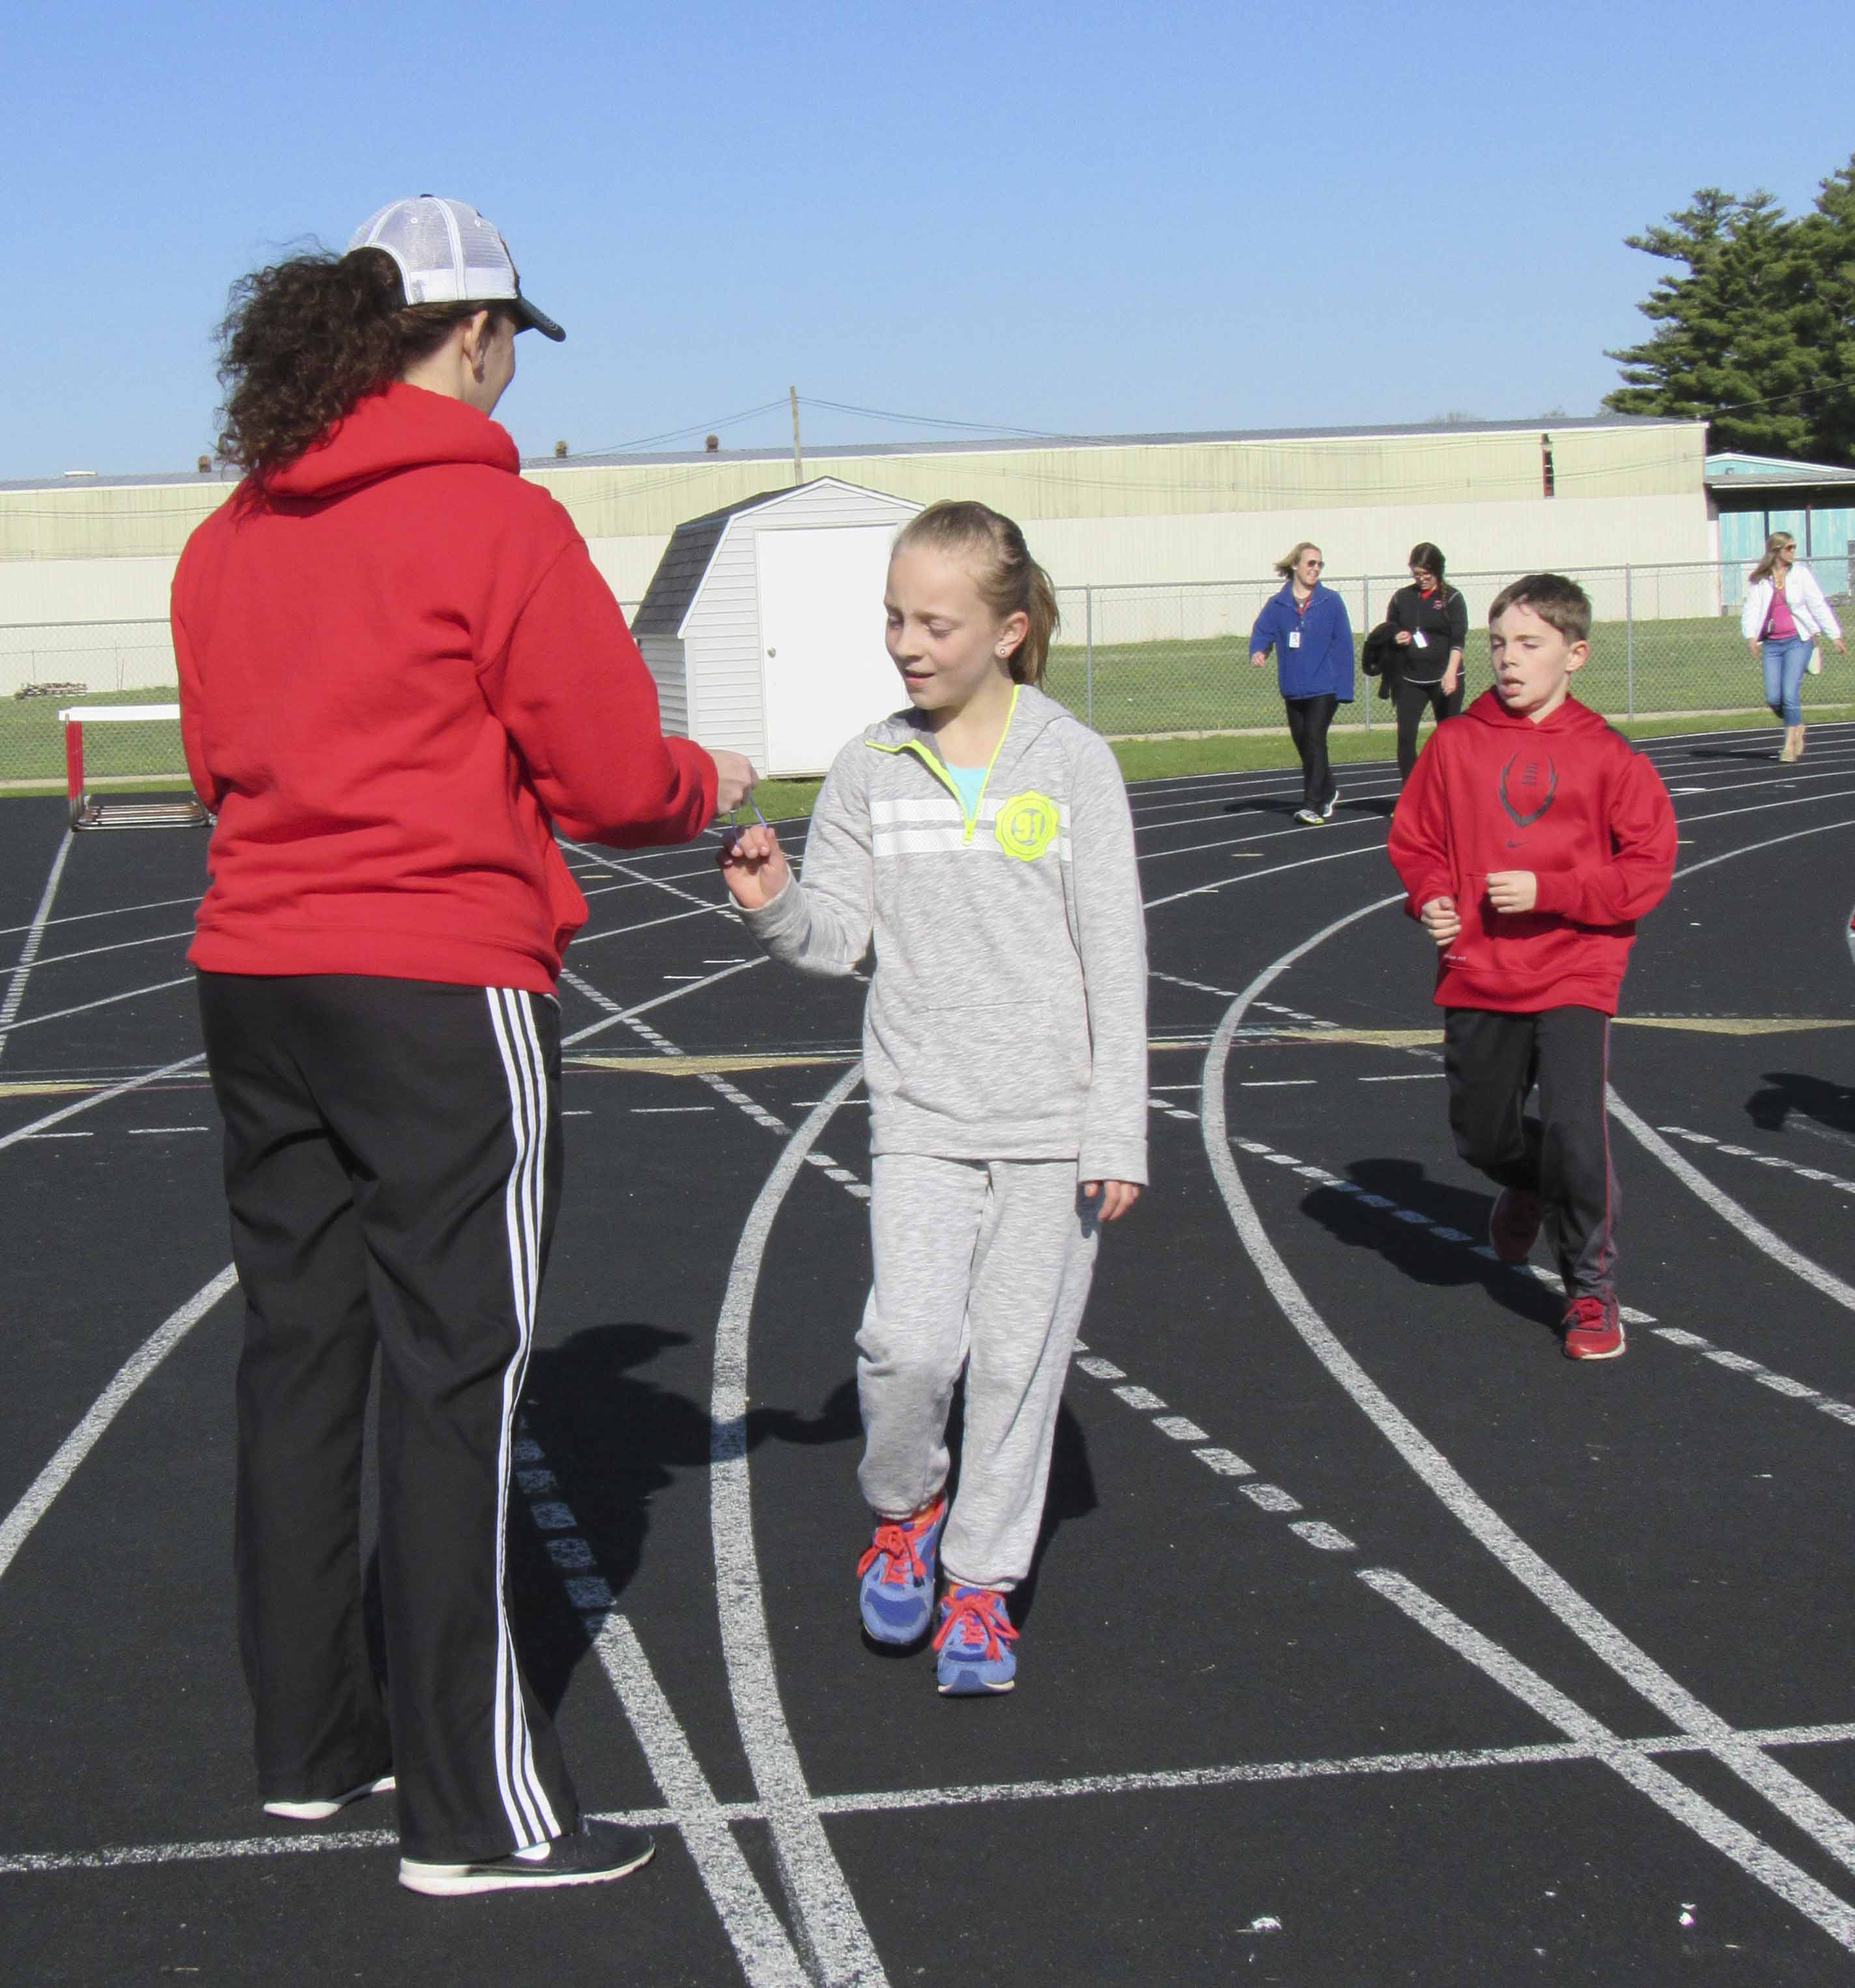 Andrea Giegerich and Kyle Arduser approach the start/finish line as they collect a bracelet from PTO volunteer Jessica Hansen. Each student received one bracelet after each lap. The students averaged 10-12 laps at the end of the hour. The bracelets were donated by PTO. Water and cheese sticks were donated by Culligan and the Jones County Dairy Producers.